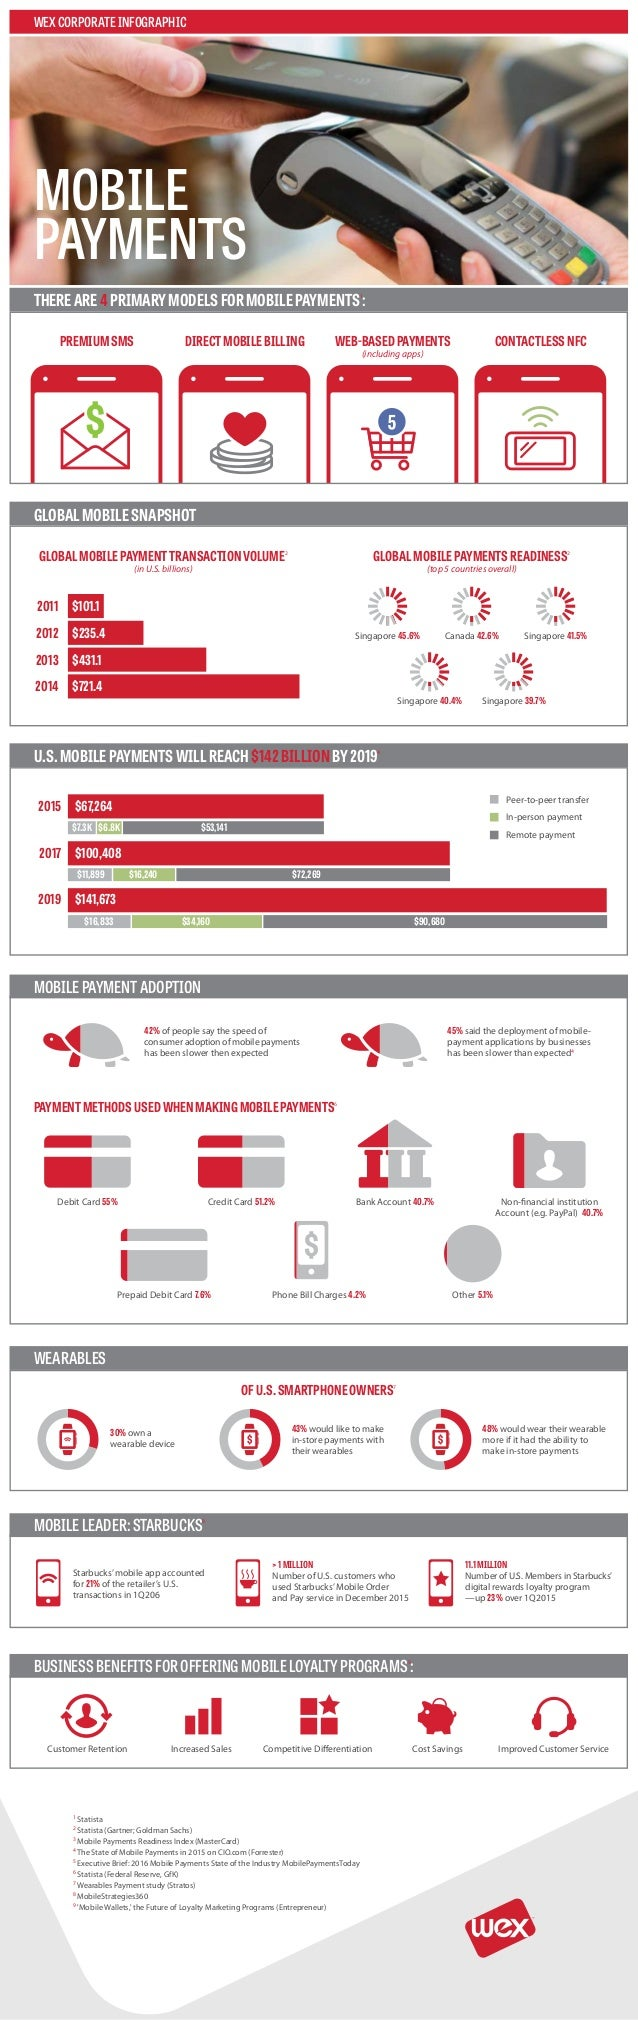 WEXCORPORATEINFOGRAPHIC MOBILE PAYMENTS THEREARE4PRIMARYMODELSFORMOBILEPAYMENTS1 : GLOBALMOBILESNAPSHOT MOBILEPAYMENTADOPT...